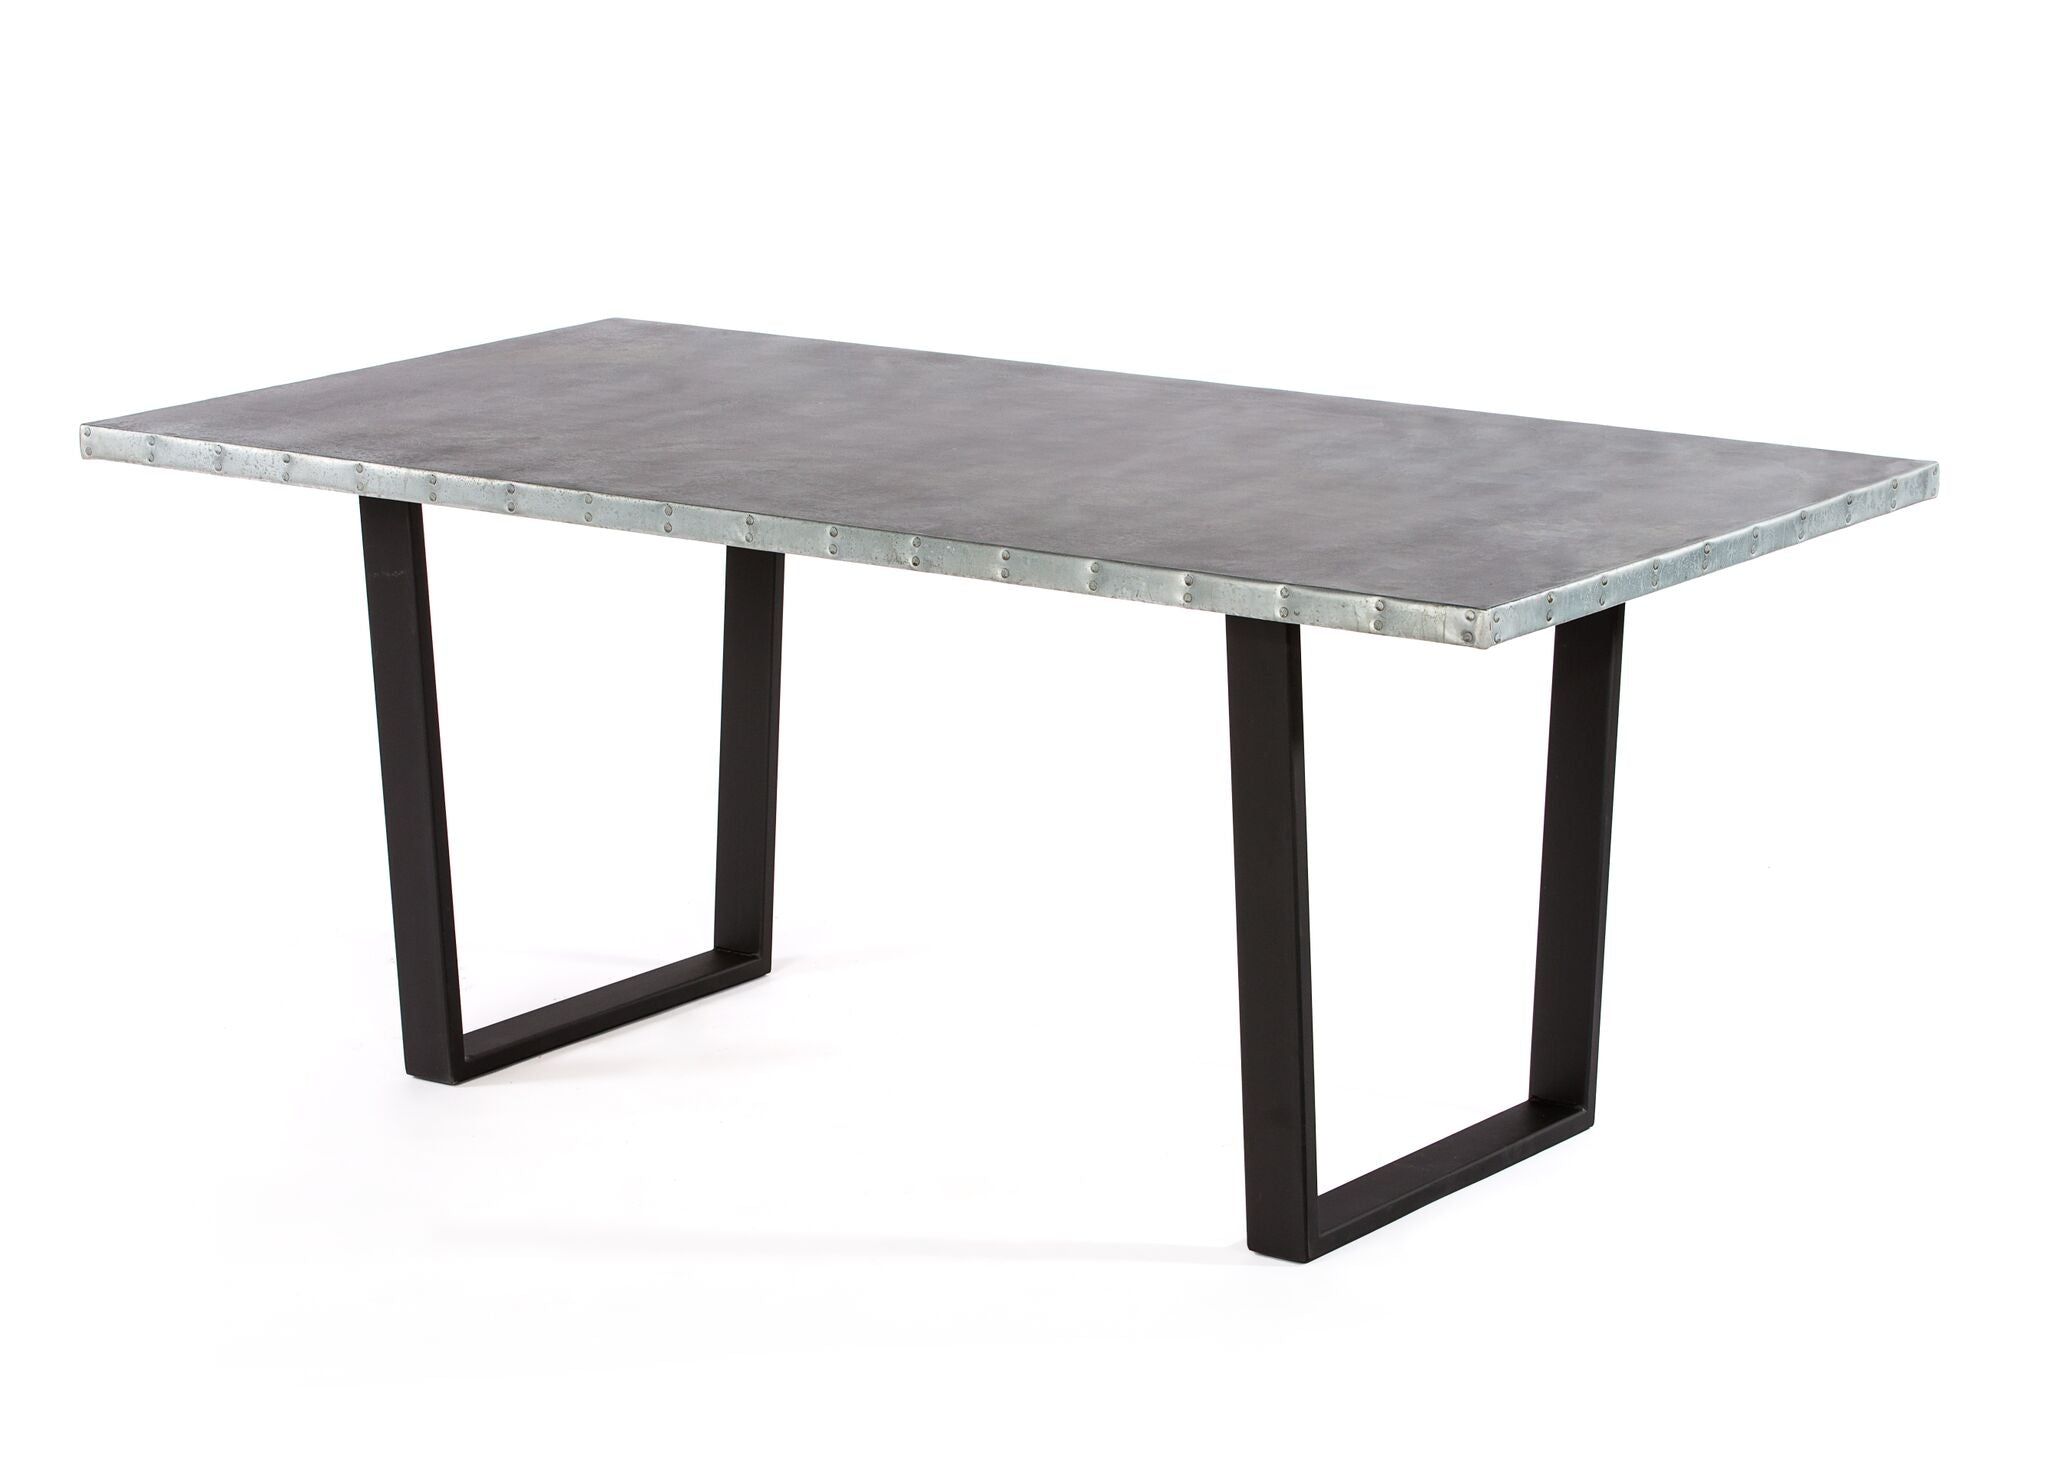 "Zinc Rectangular Table | Trenton Table | CLASSIC | Black | 84""L 39""W 30""H 